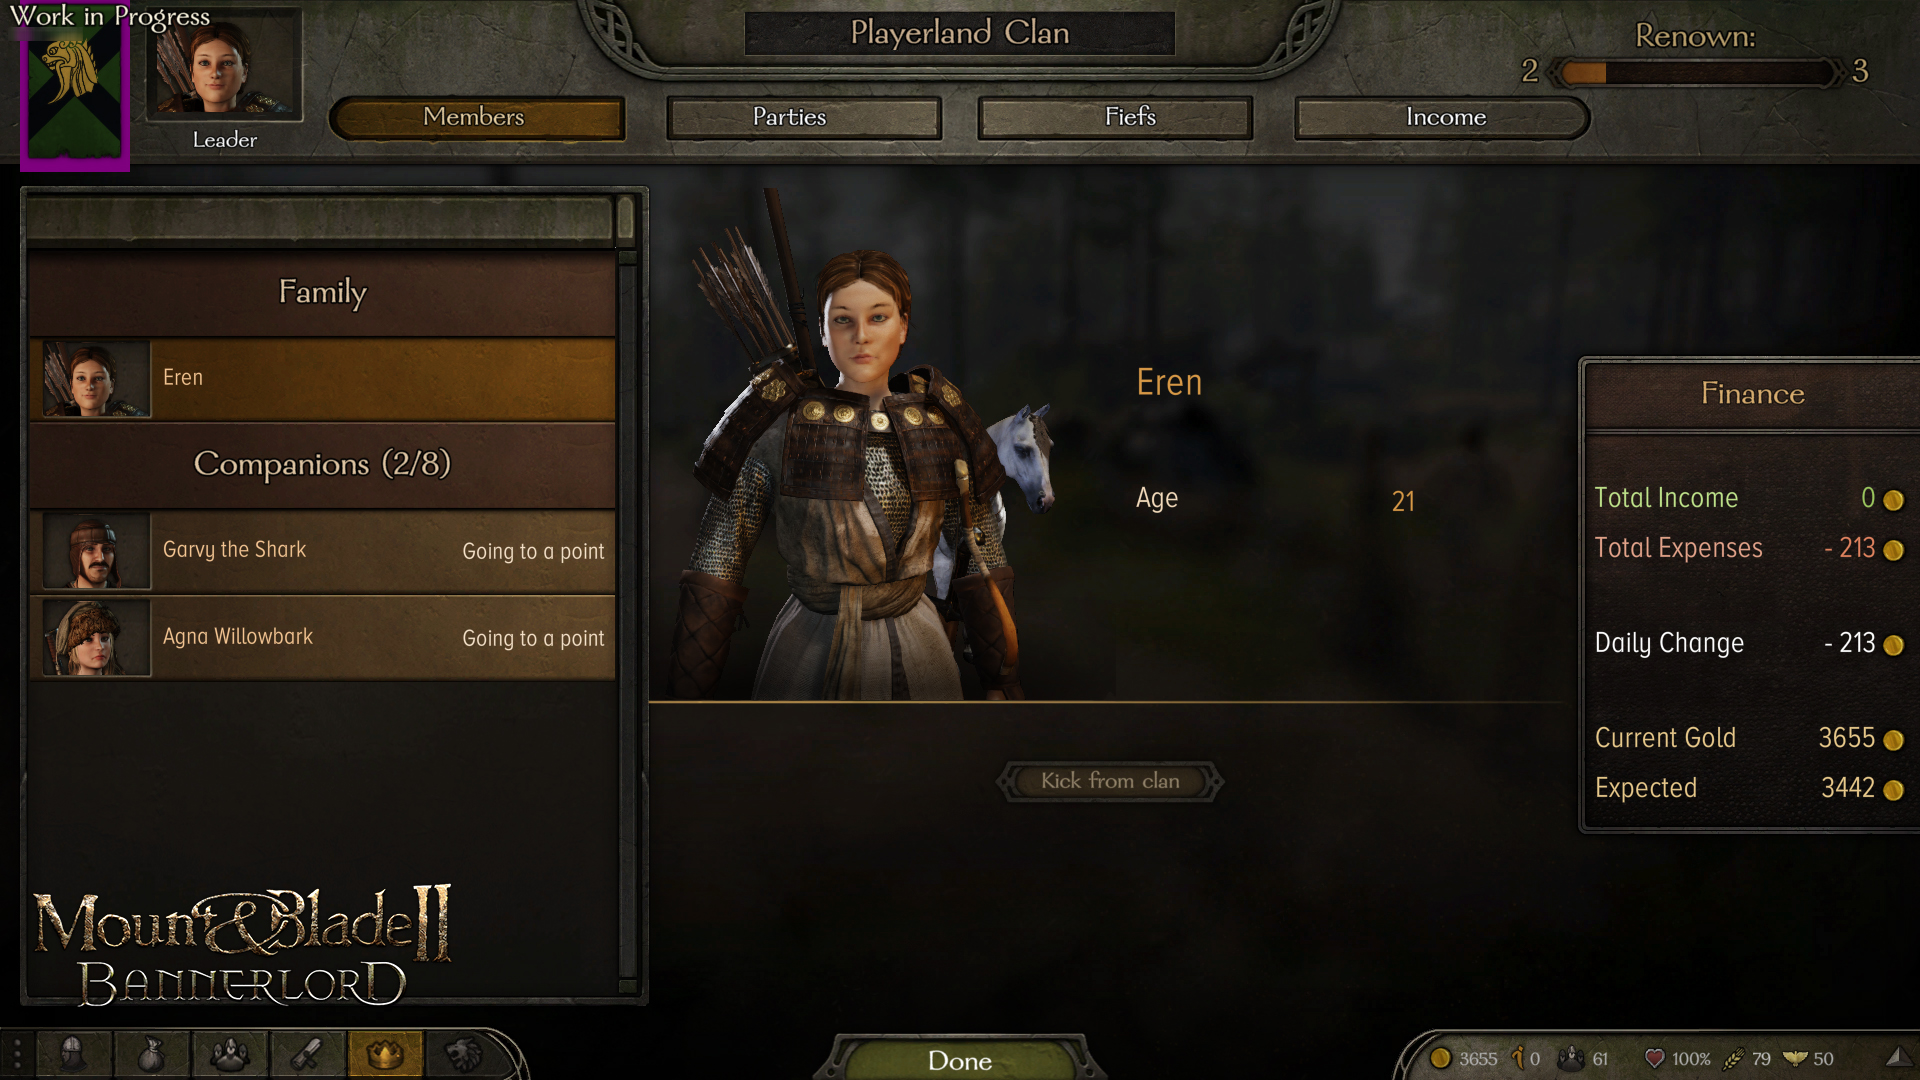 Mount And Blade 2 Bannerlord Developer Diary Big Changes Coming To The Renown System Player One